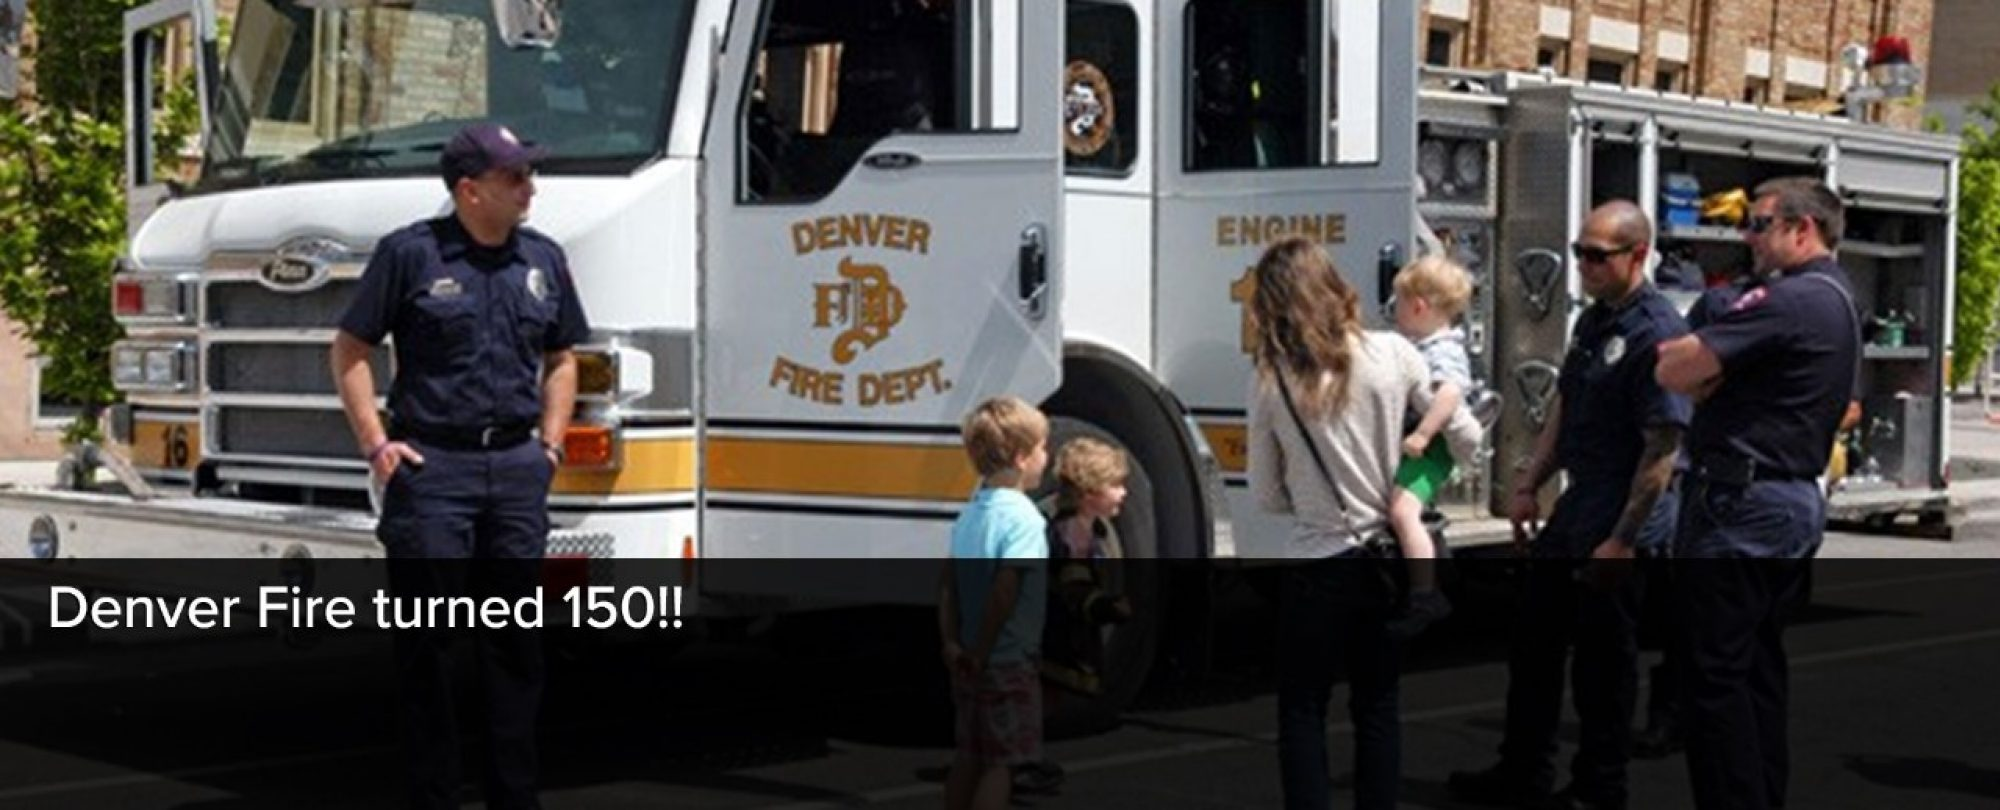 Photo of Denver Firefighters showing families a tour of one of their Fire trucks. Denver Fire Department turned 150 in 2016.